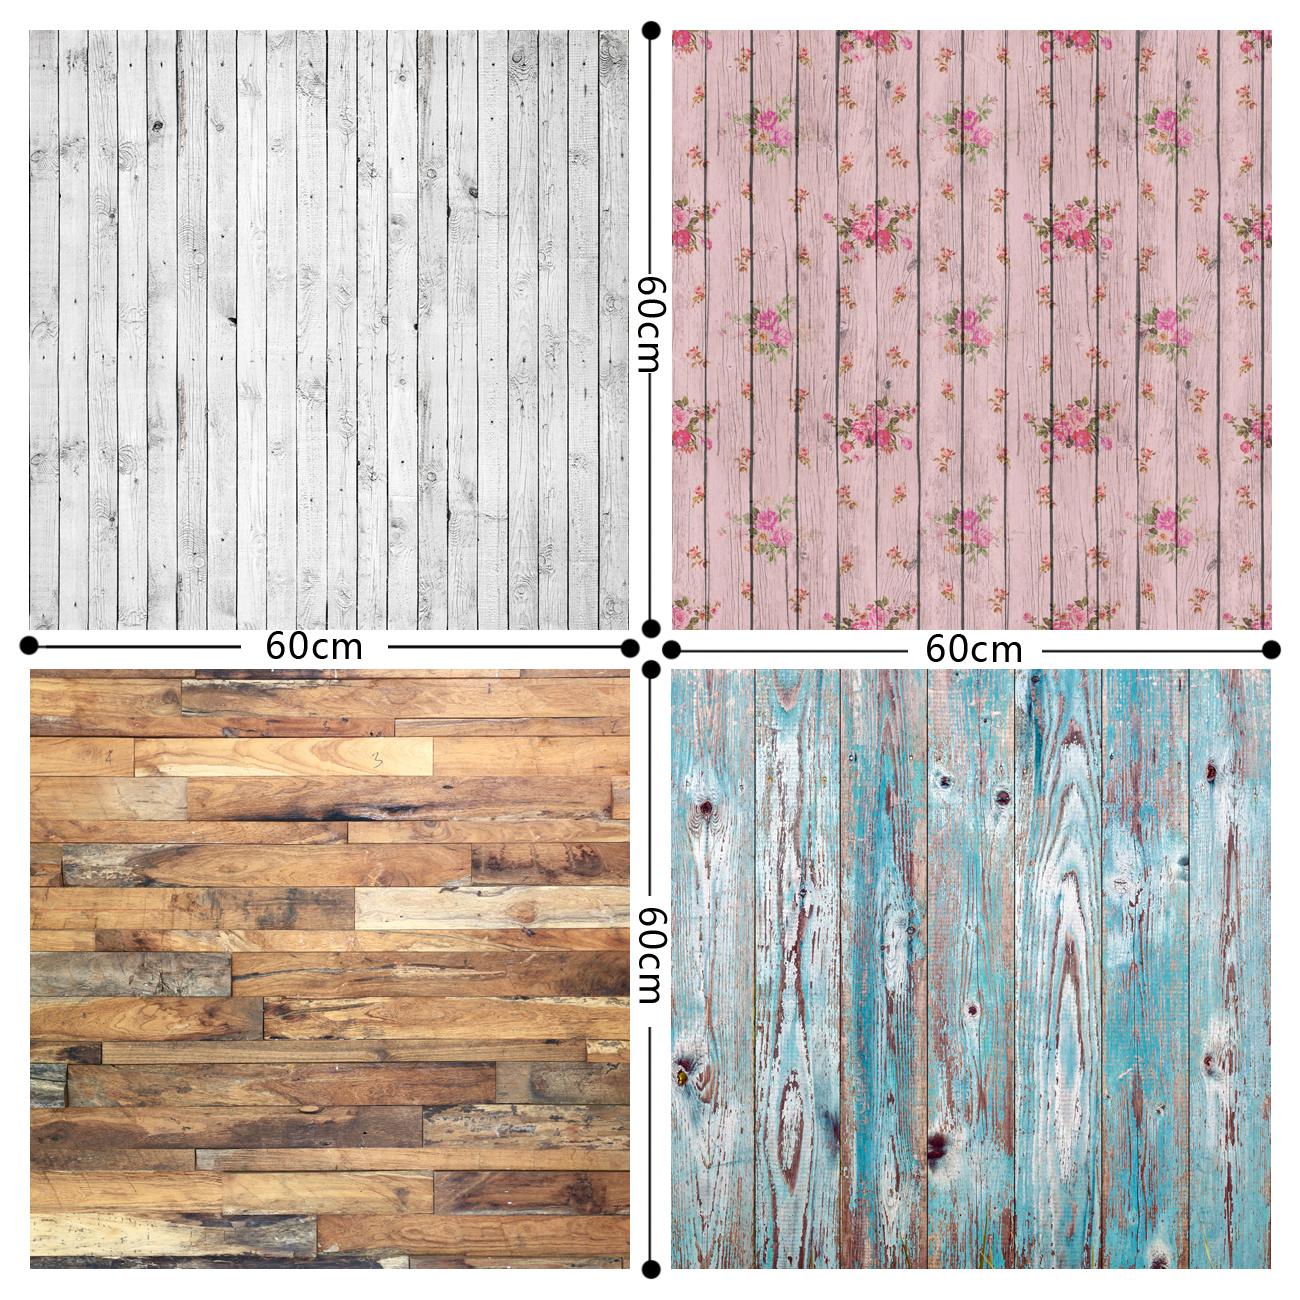 HUAYI 4pc 2x2ft wood floor backdrop vinyl photography backdrops photo props background Small object shooting GY-005 retro background wood floor photo studio props photography backdrops vinyl 5x7ft